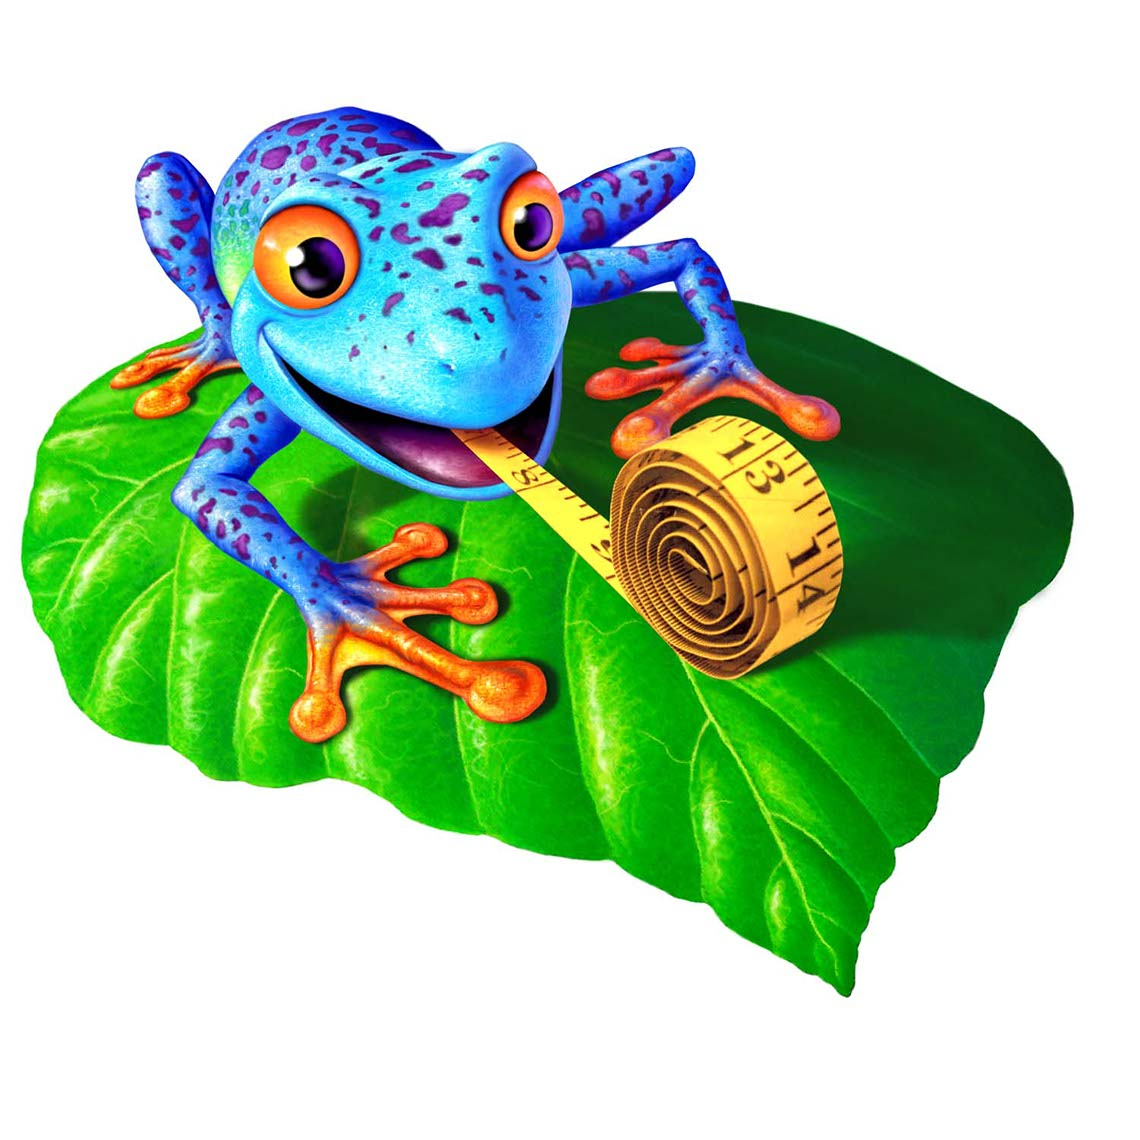 illustration-Animated_Animals_Animal Stylized Frog-Jerry LoFaro